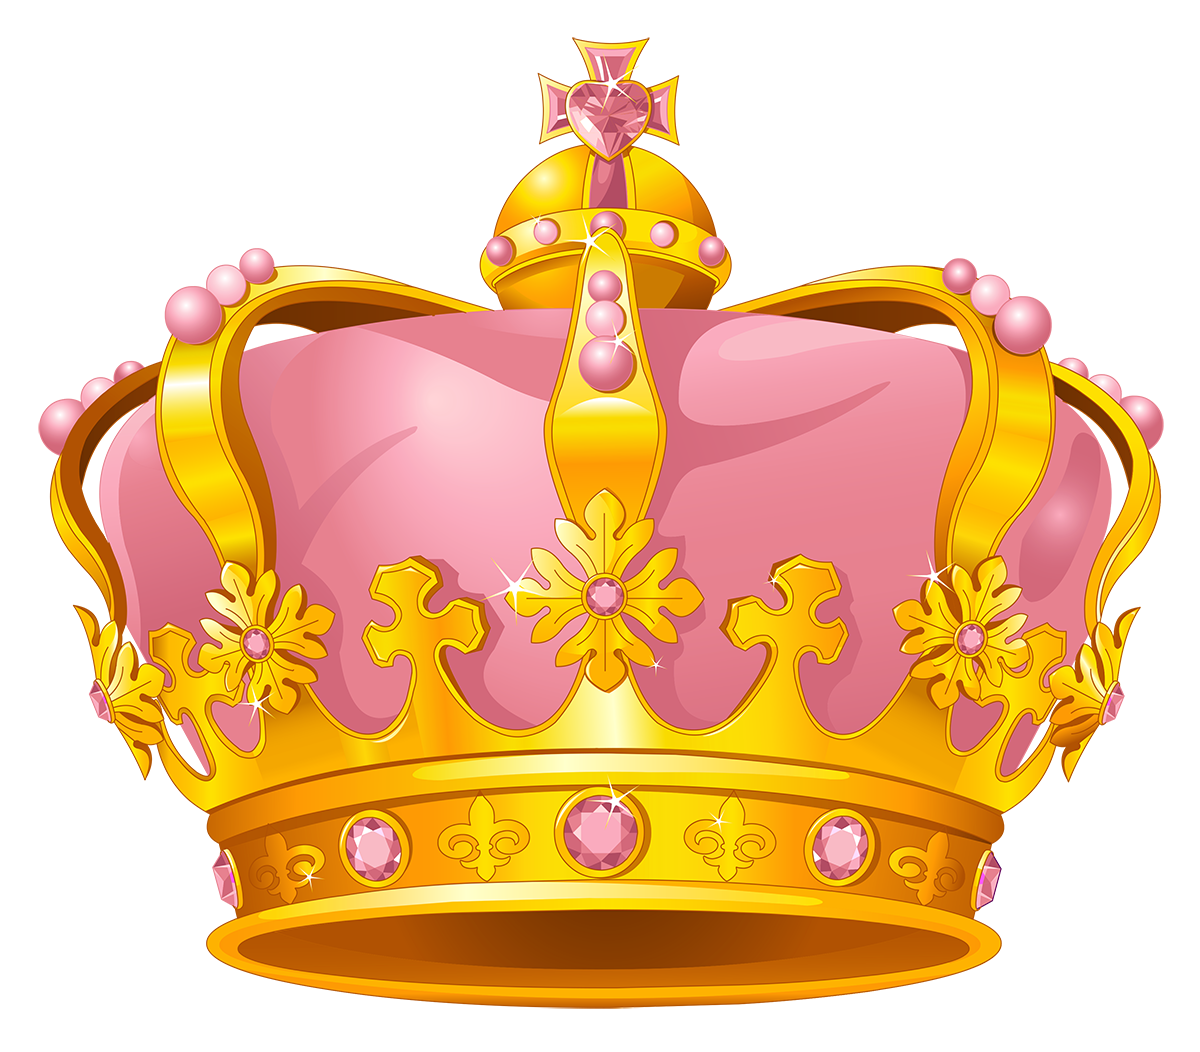 Queen clipart beauty queen. Corona reale cerca con